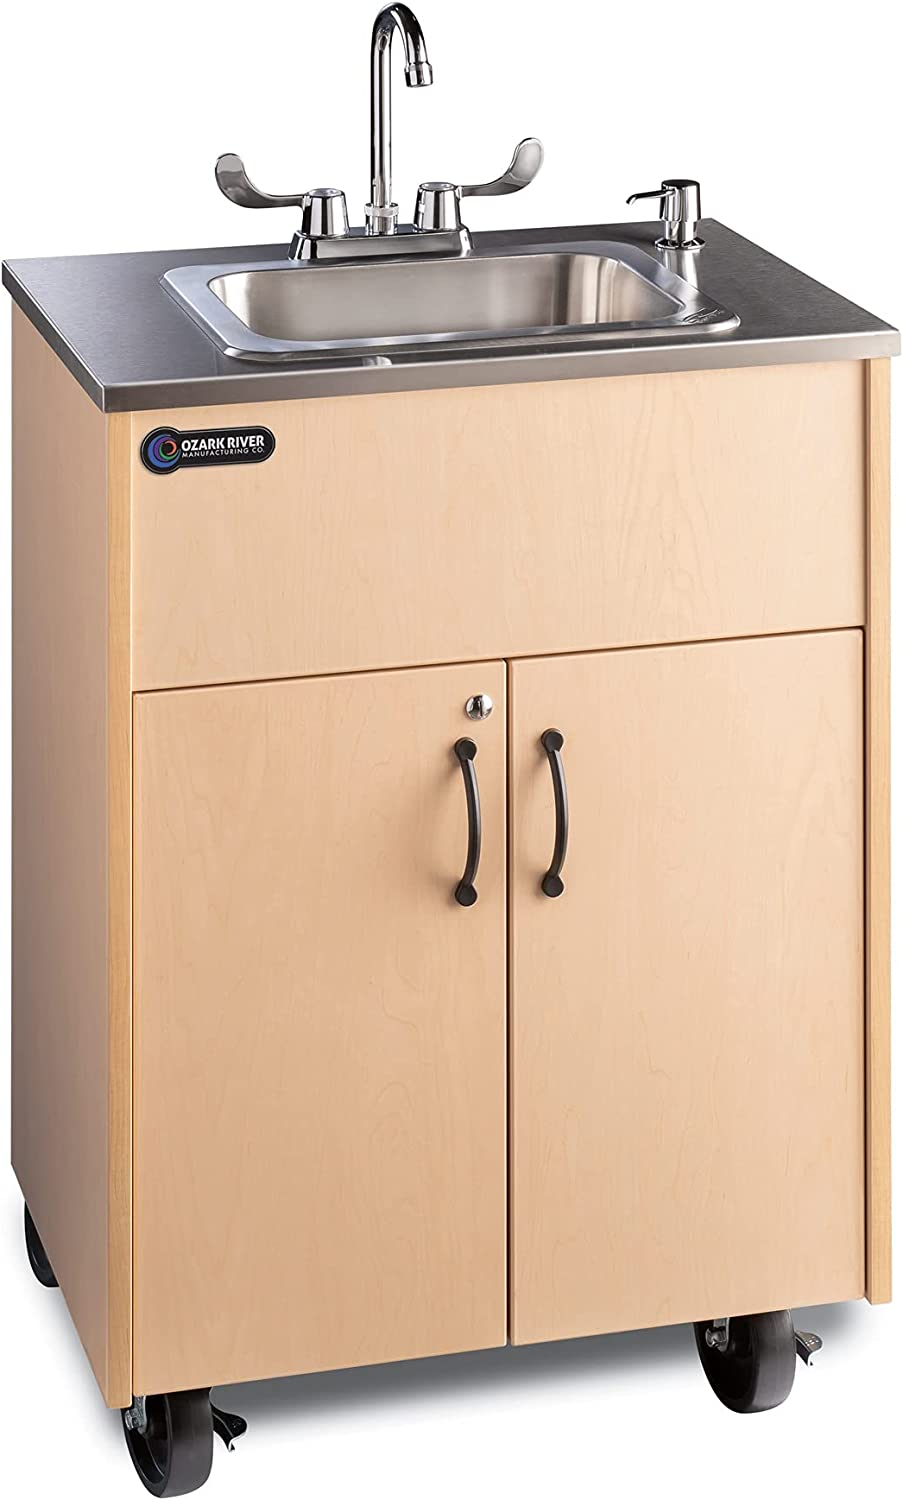 Ozark River Premier El Paso Mall 2021 new S1D Maple Portable Contained Self Hot Water